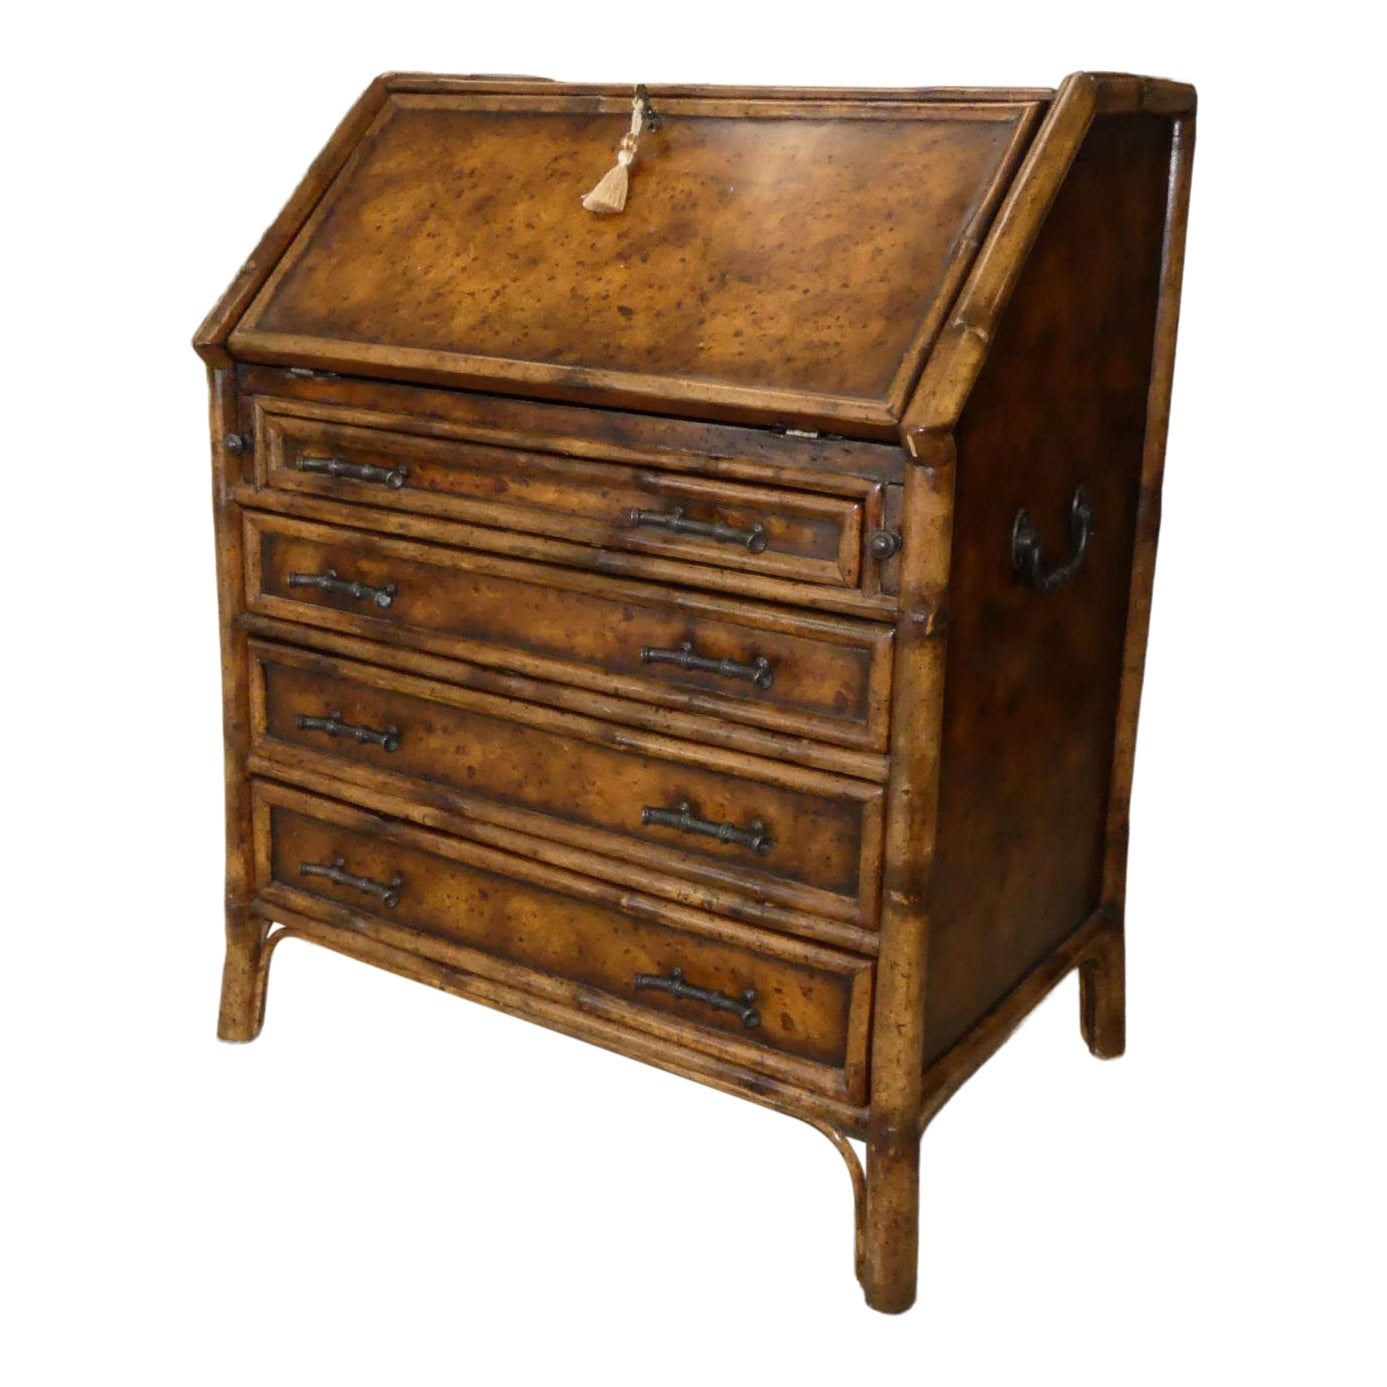 SOLD Theodore Alexander Secretary Chest of Drawers